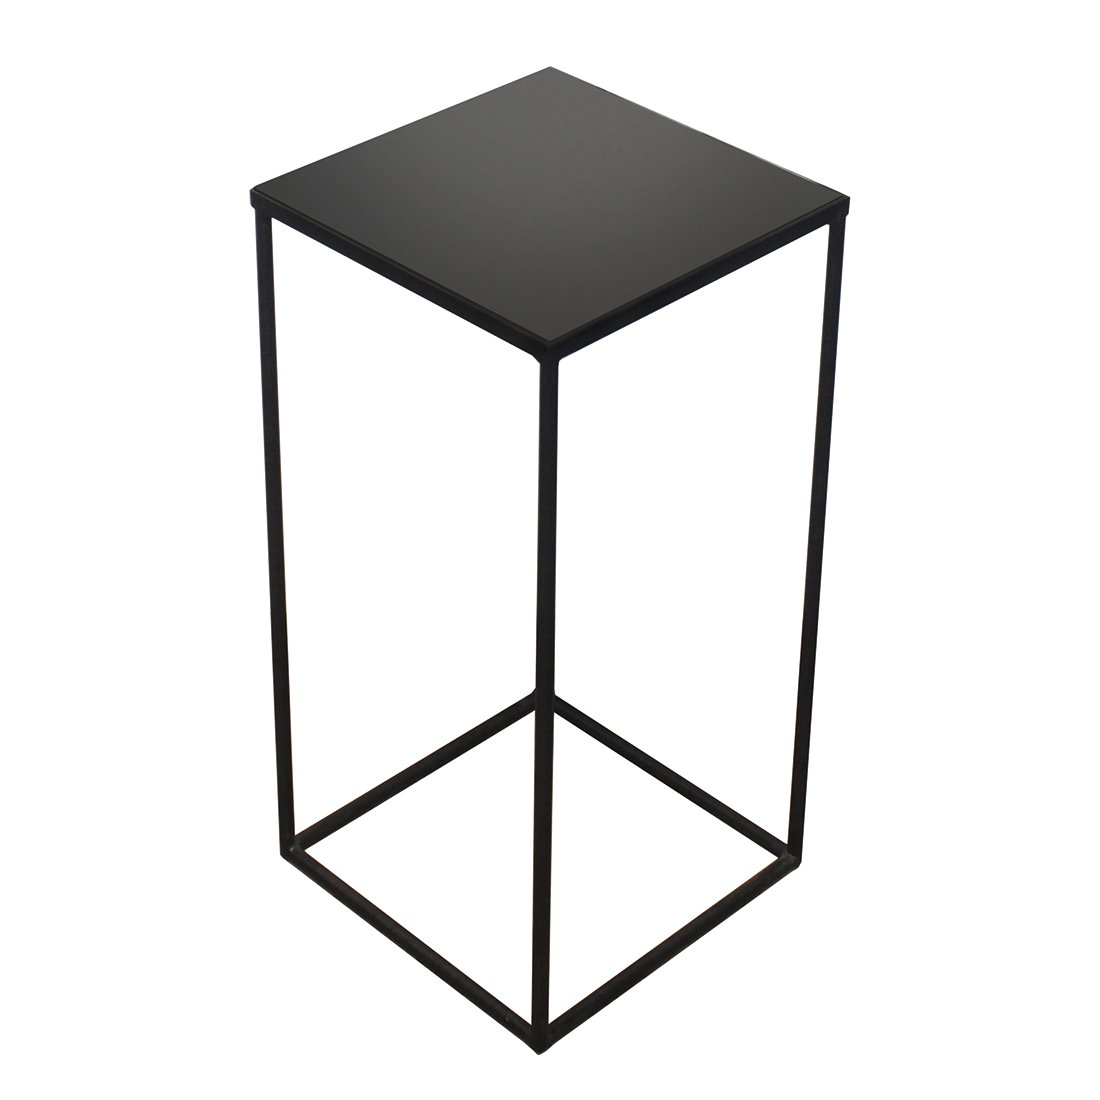 Ethnicraft Square Side Table Charcoal Mirror Small - Mid